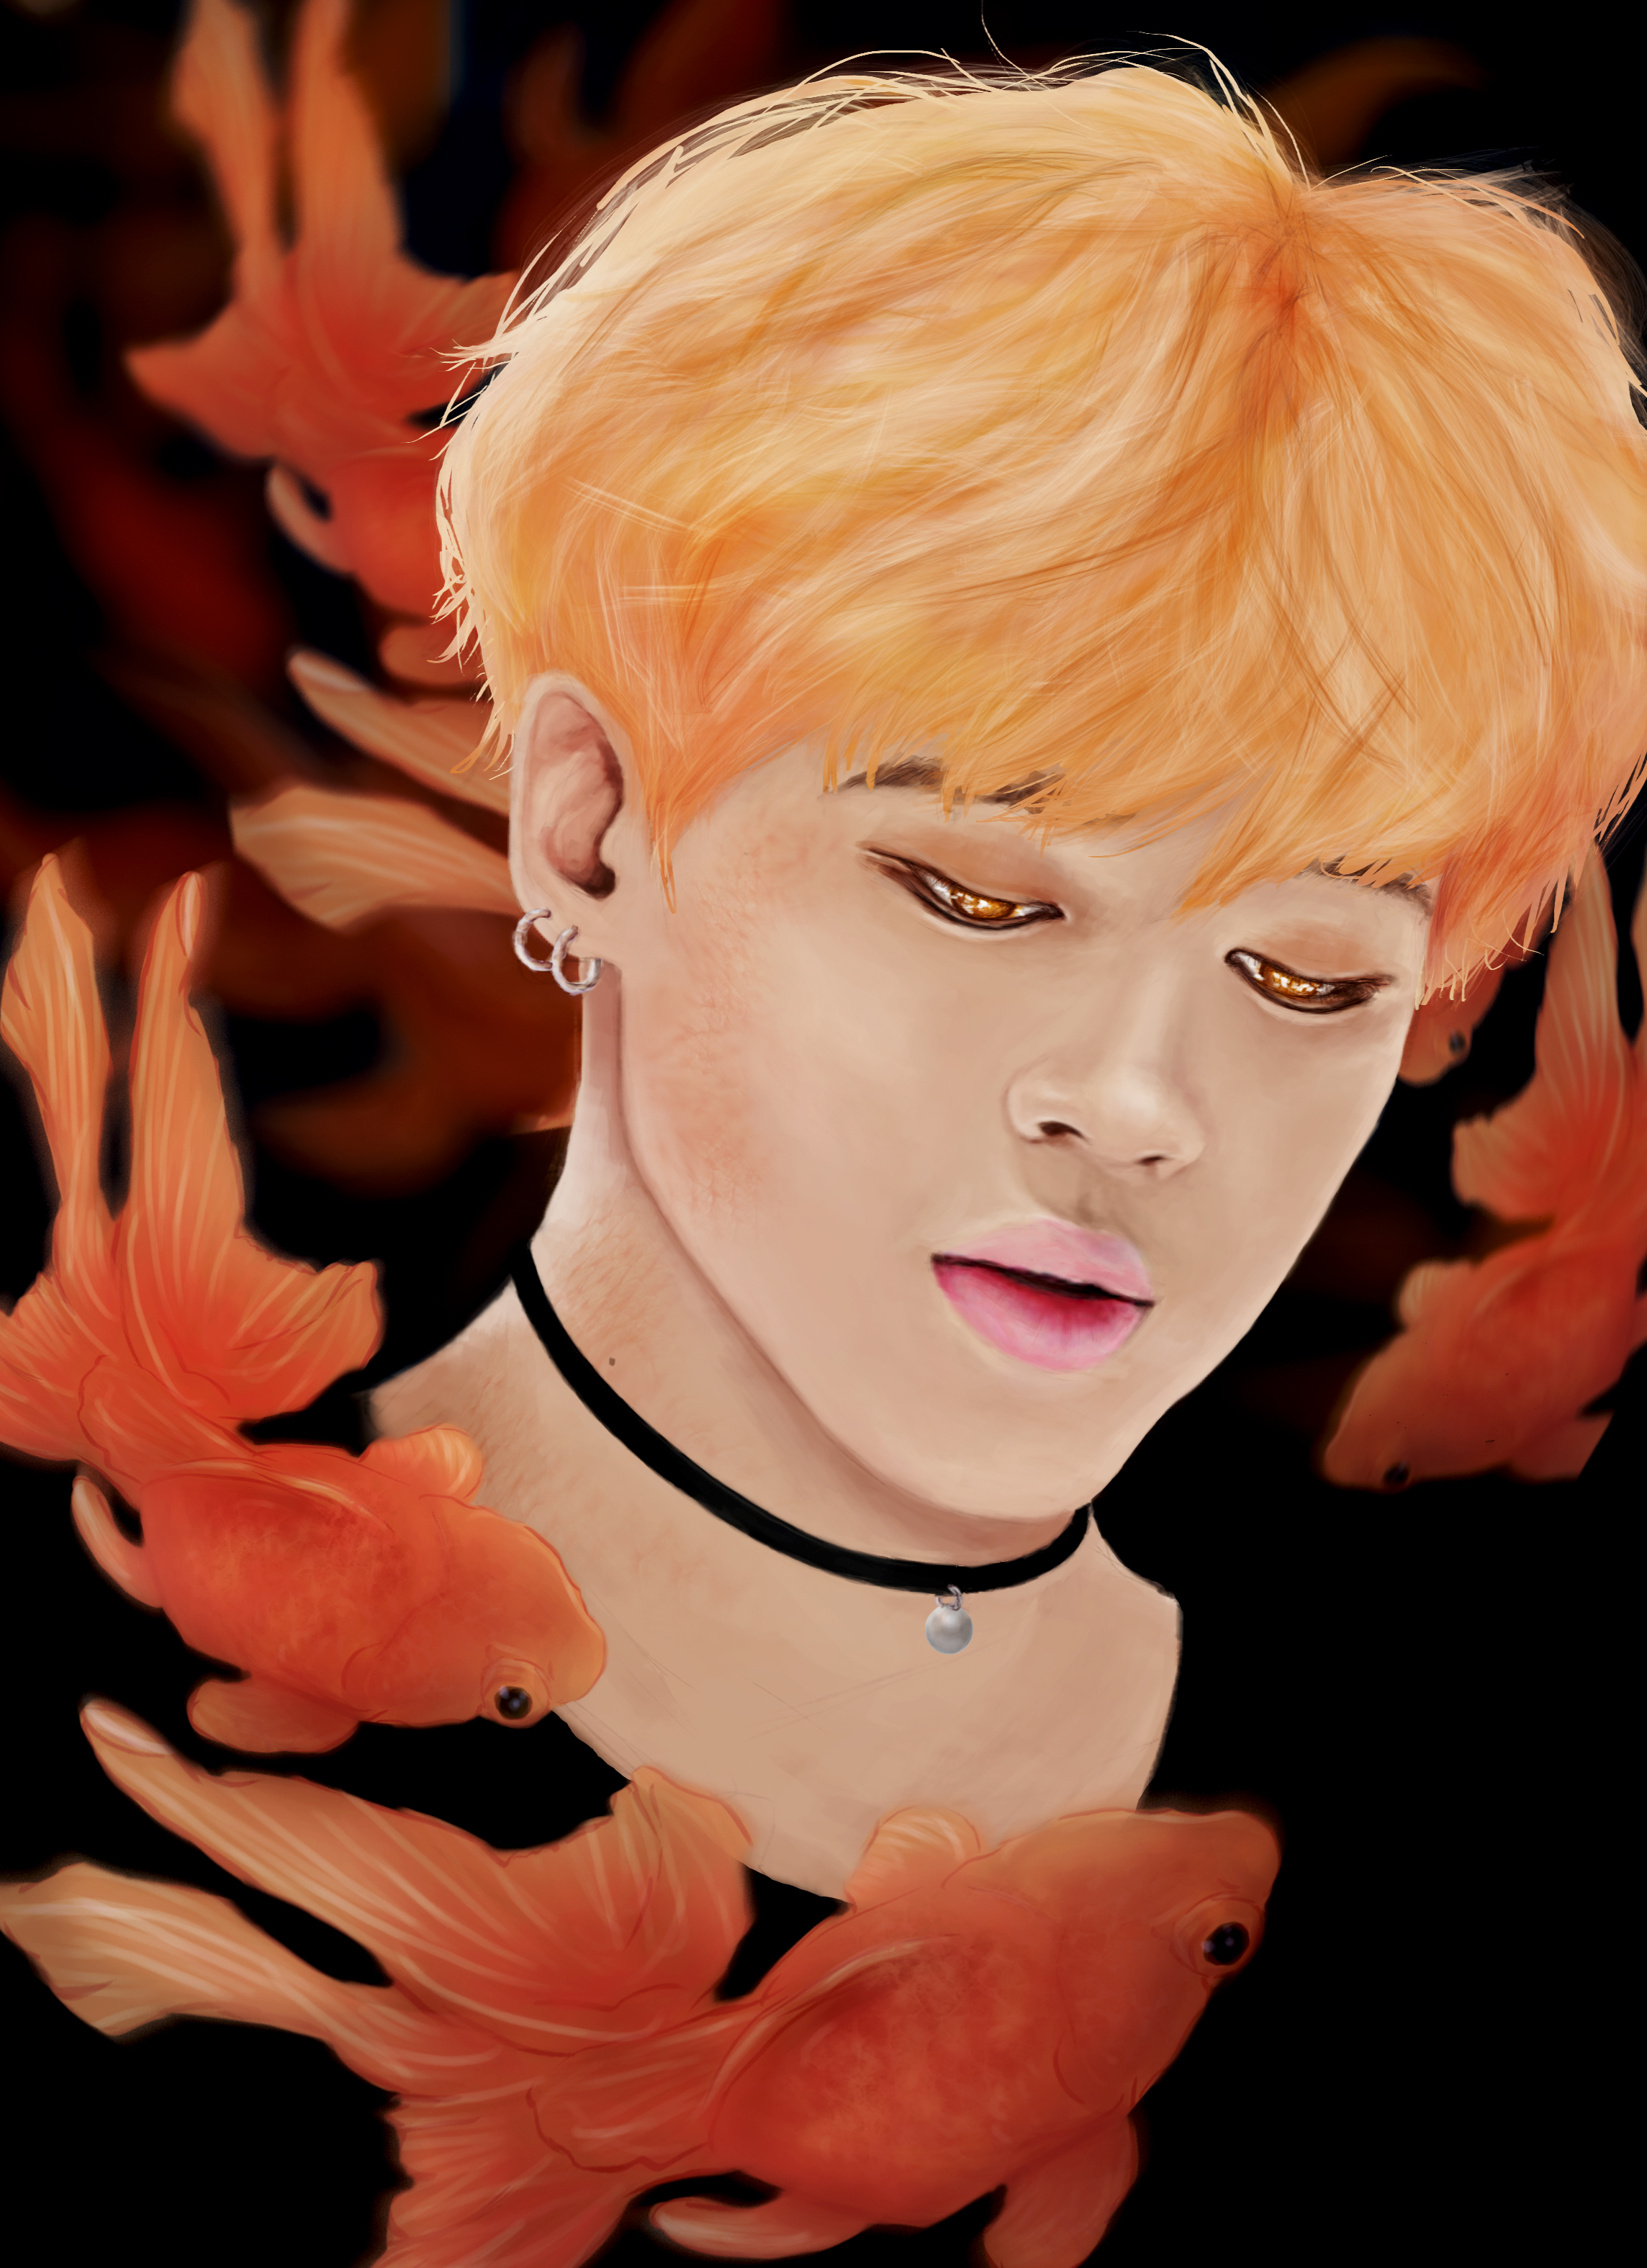 goldfish jimin by mazazuki on deviantart